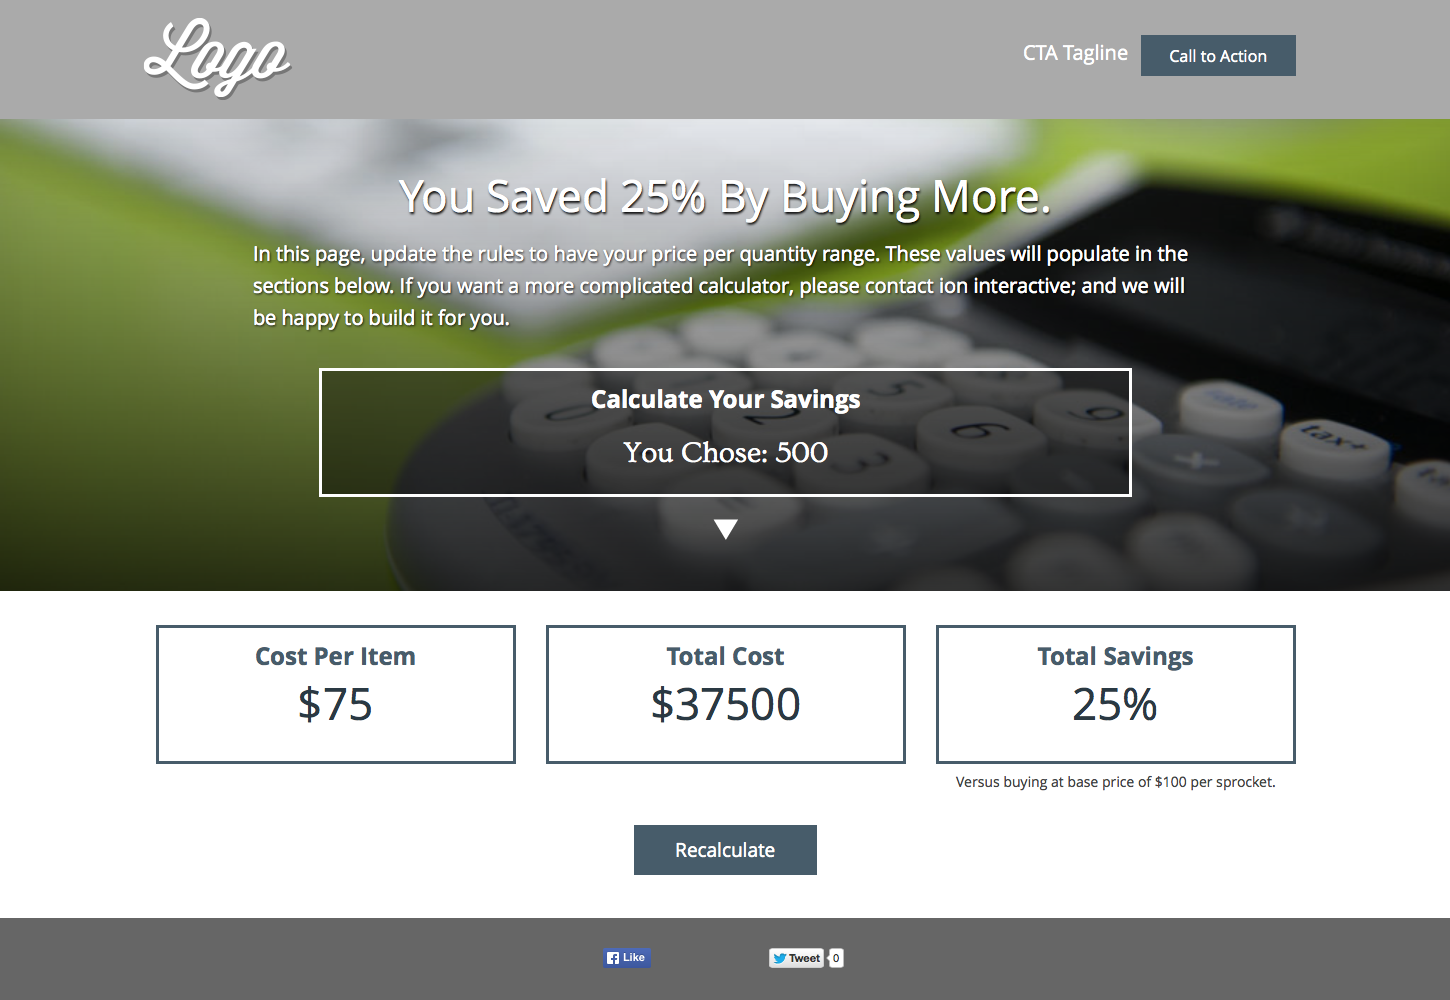 Your online visitor can enter their desired quantity and can see the percentage of savings, plus cost-per-item and total cost. They also have the option to recalculate for further savings options and a call-to-action to receive further information or to contact.